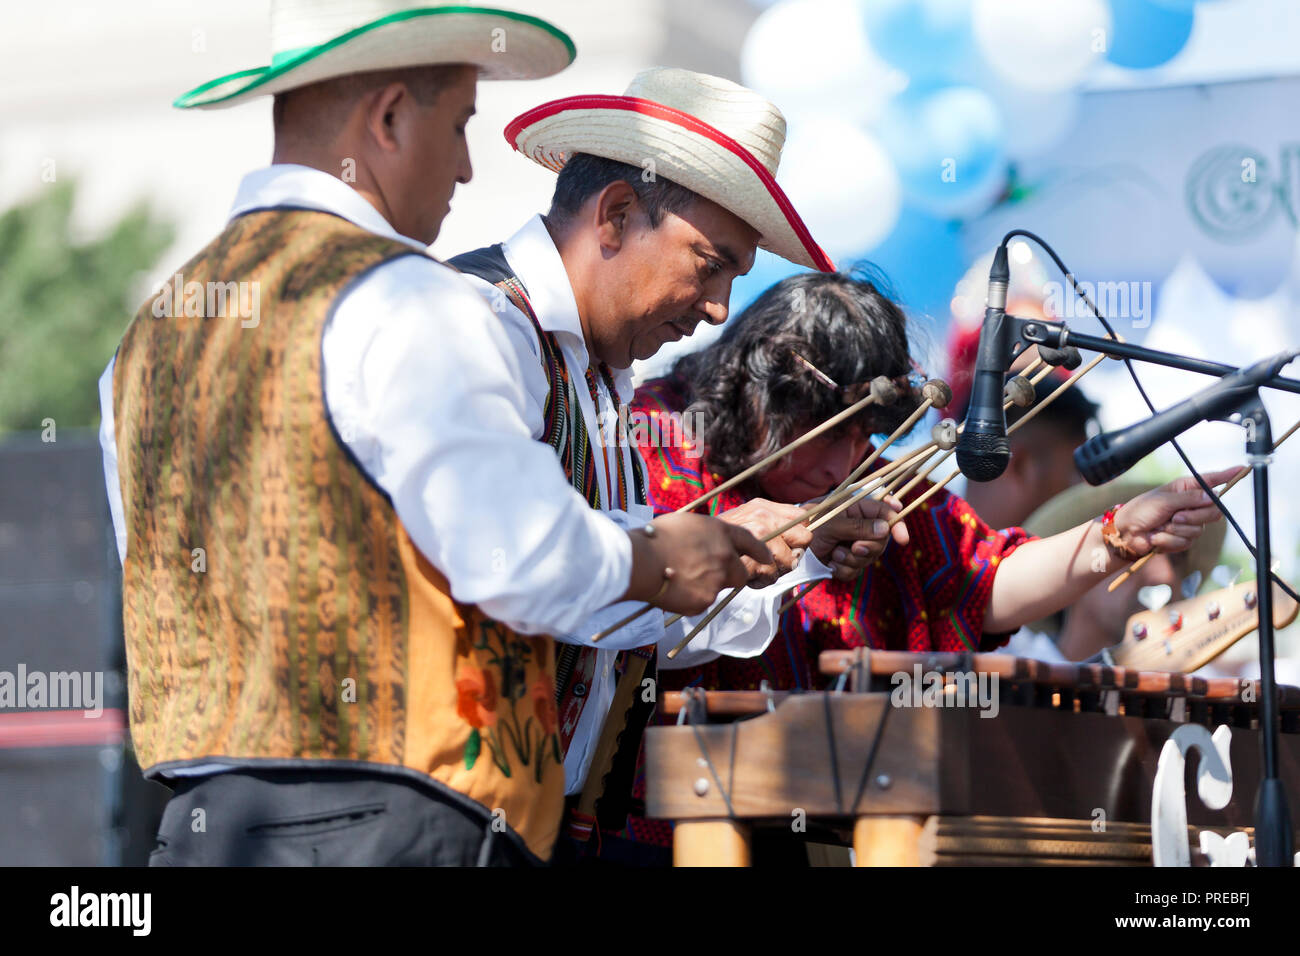 Guatemalan xylophone players (Hispanic xylophone player) - USA - Stock Image